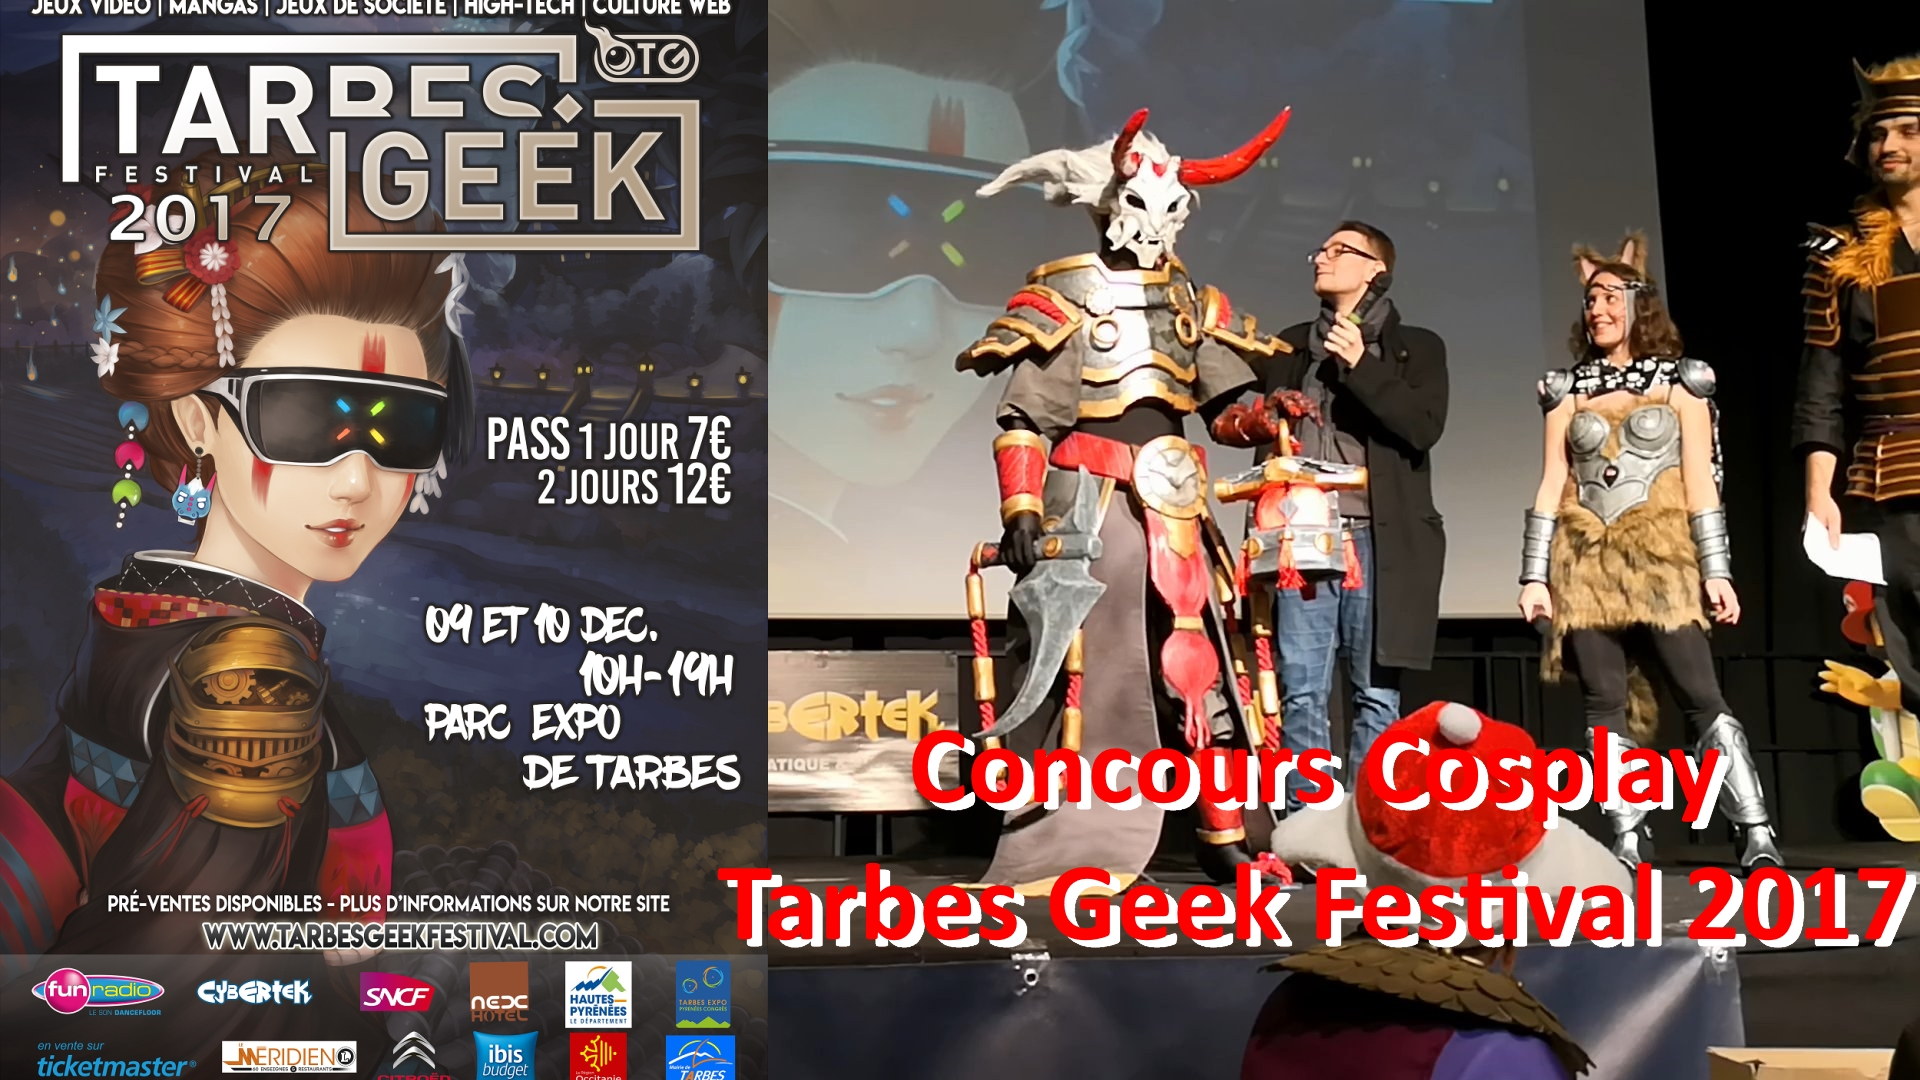 Concours Cosplay - Tarbes Geek Festival 2017